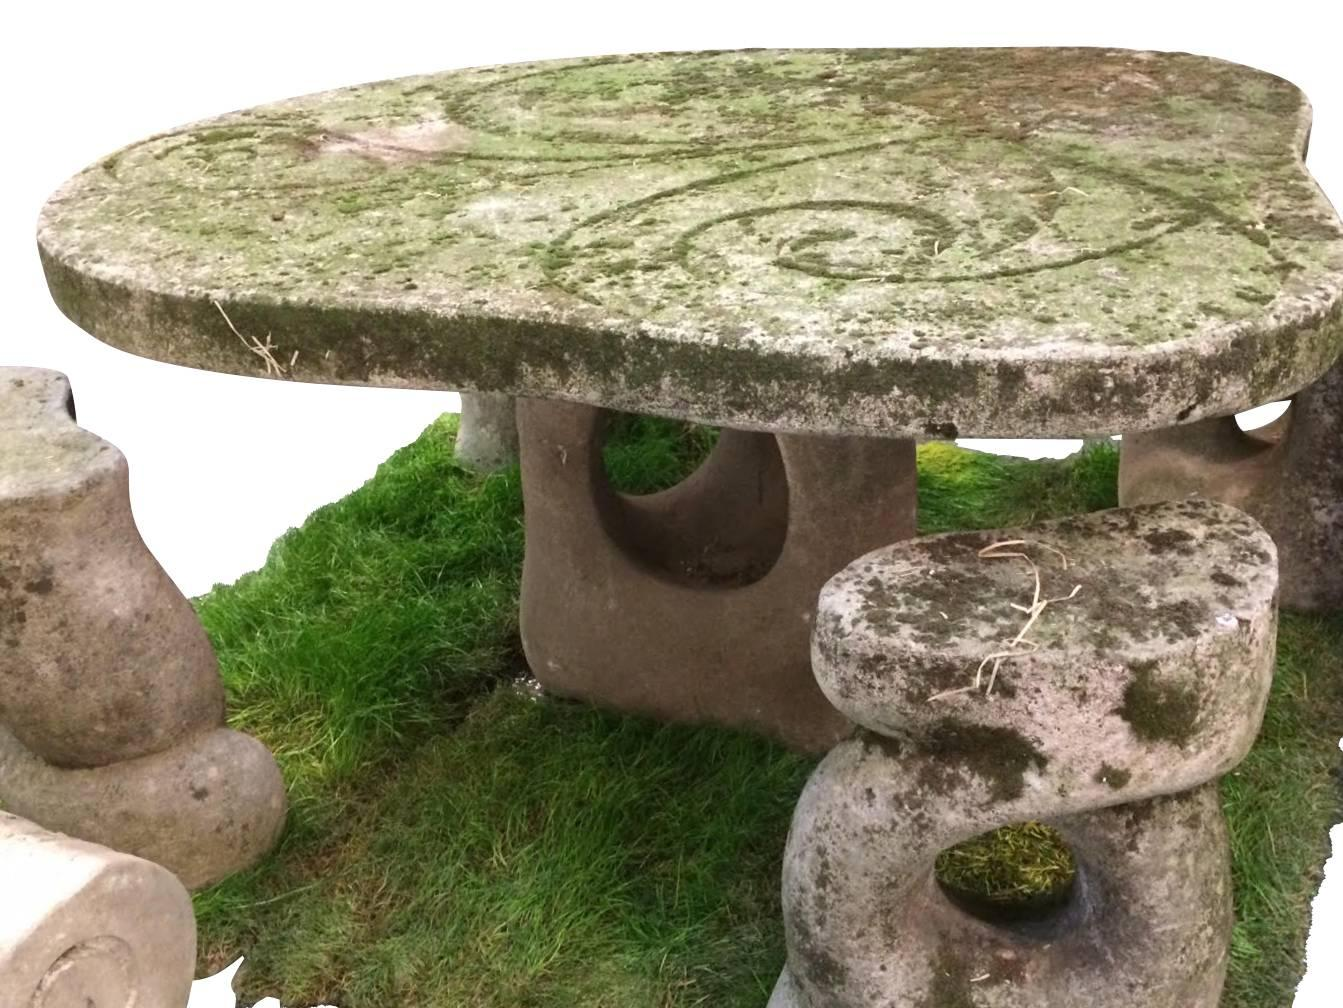 1940s Italian Unusual Design / Shaped Vicenza Stone Garden Table With Four  Whimsical Stone Garden Stools